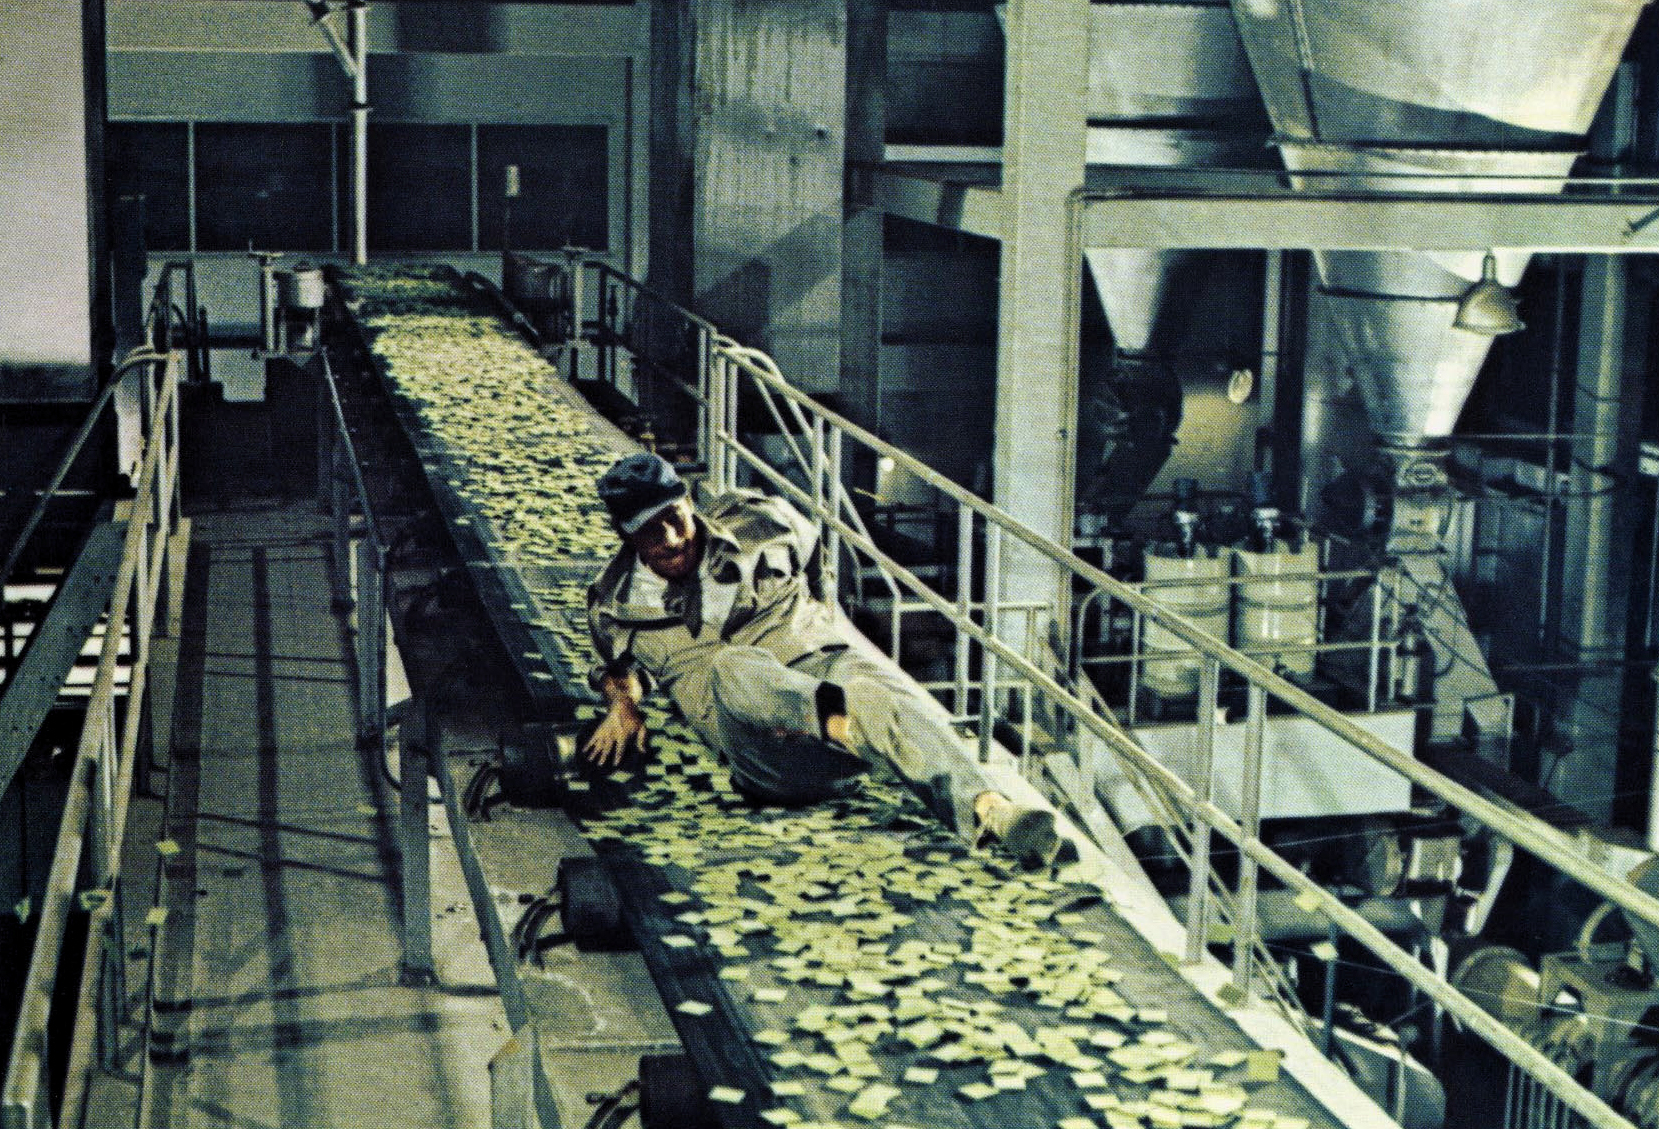 Soylent Green: On Energy Crisis, Overpopulation, and the Patriarchy